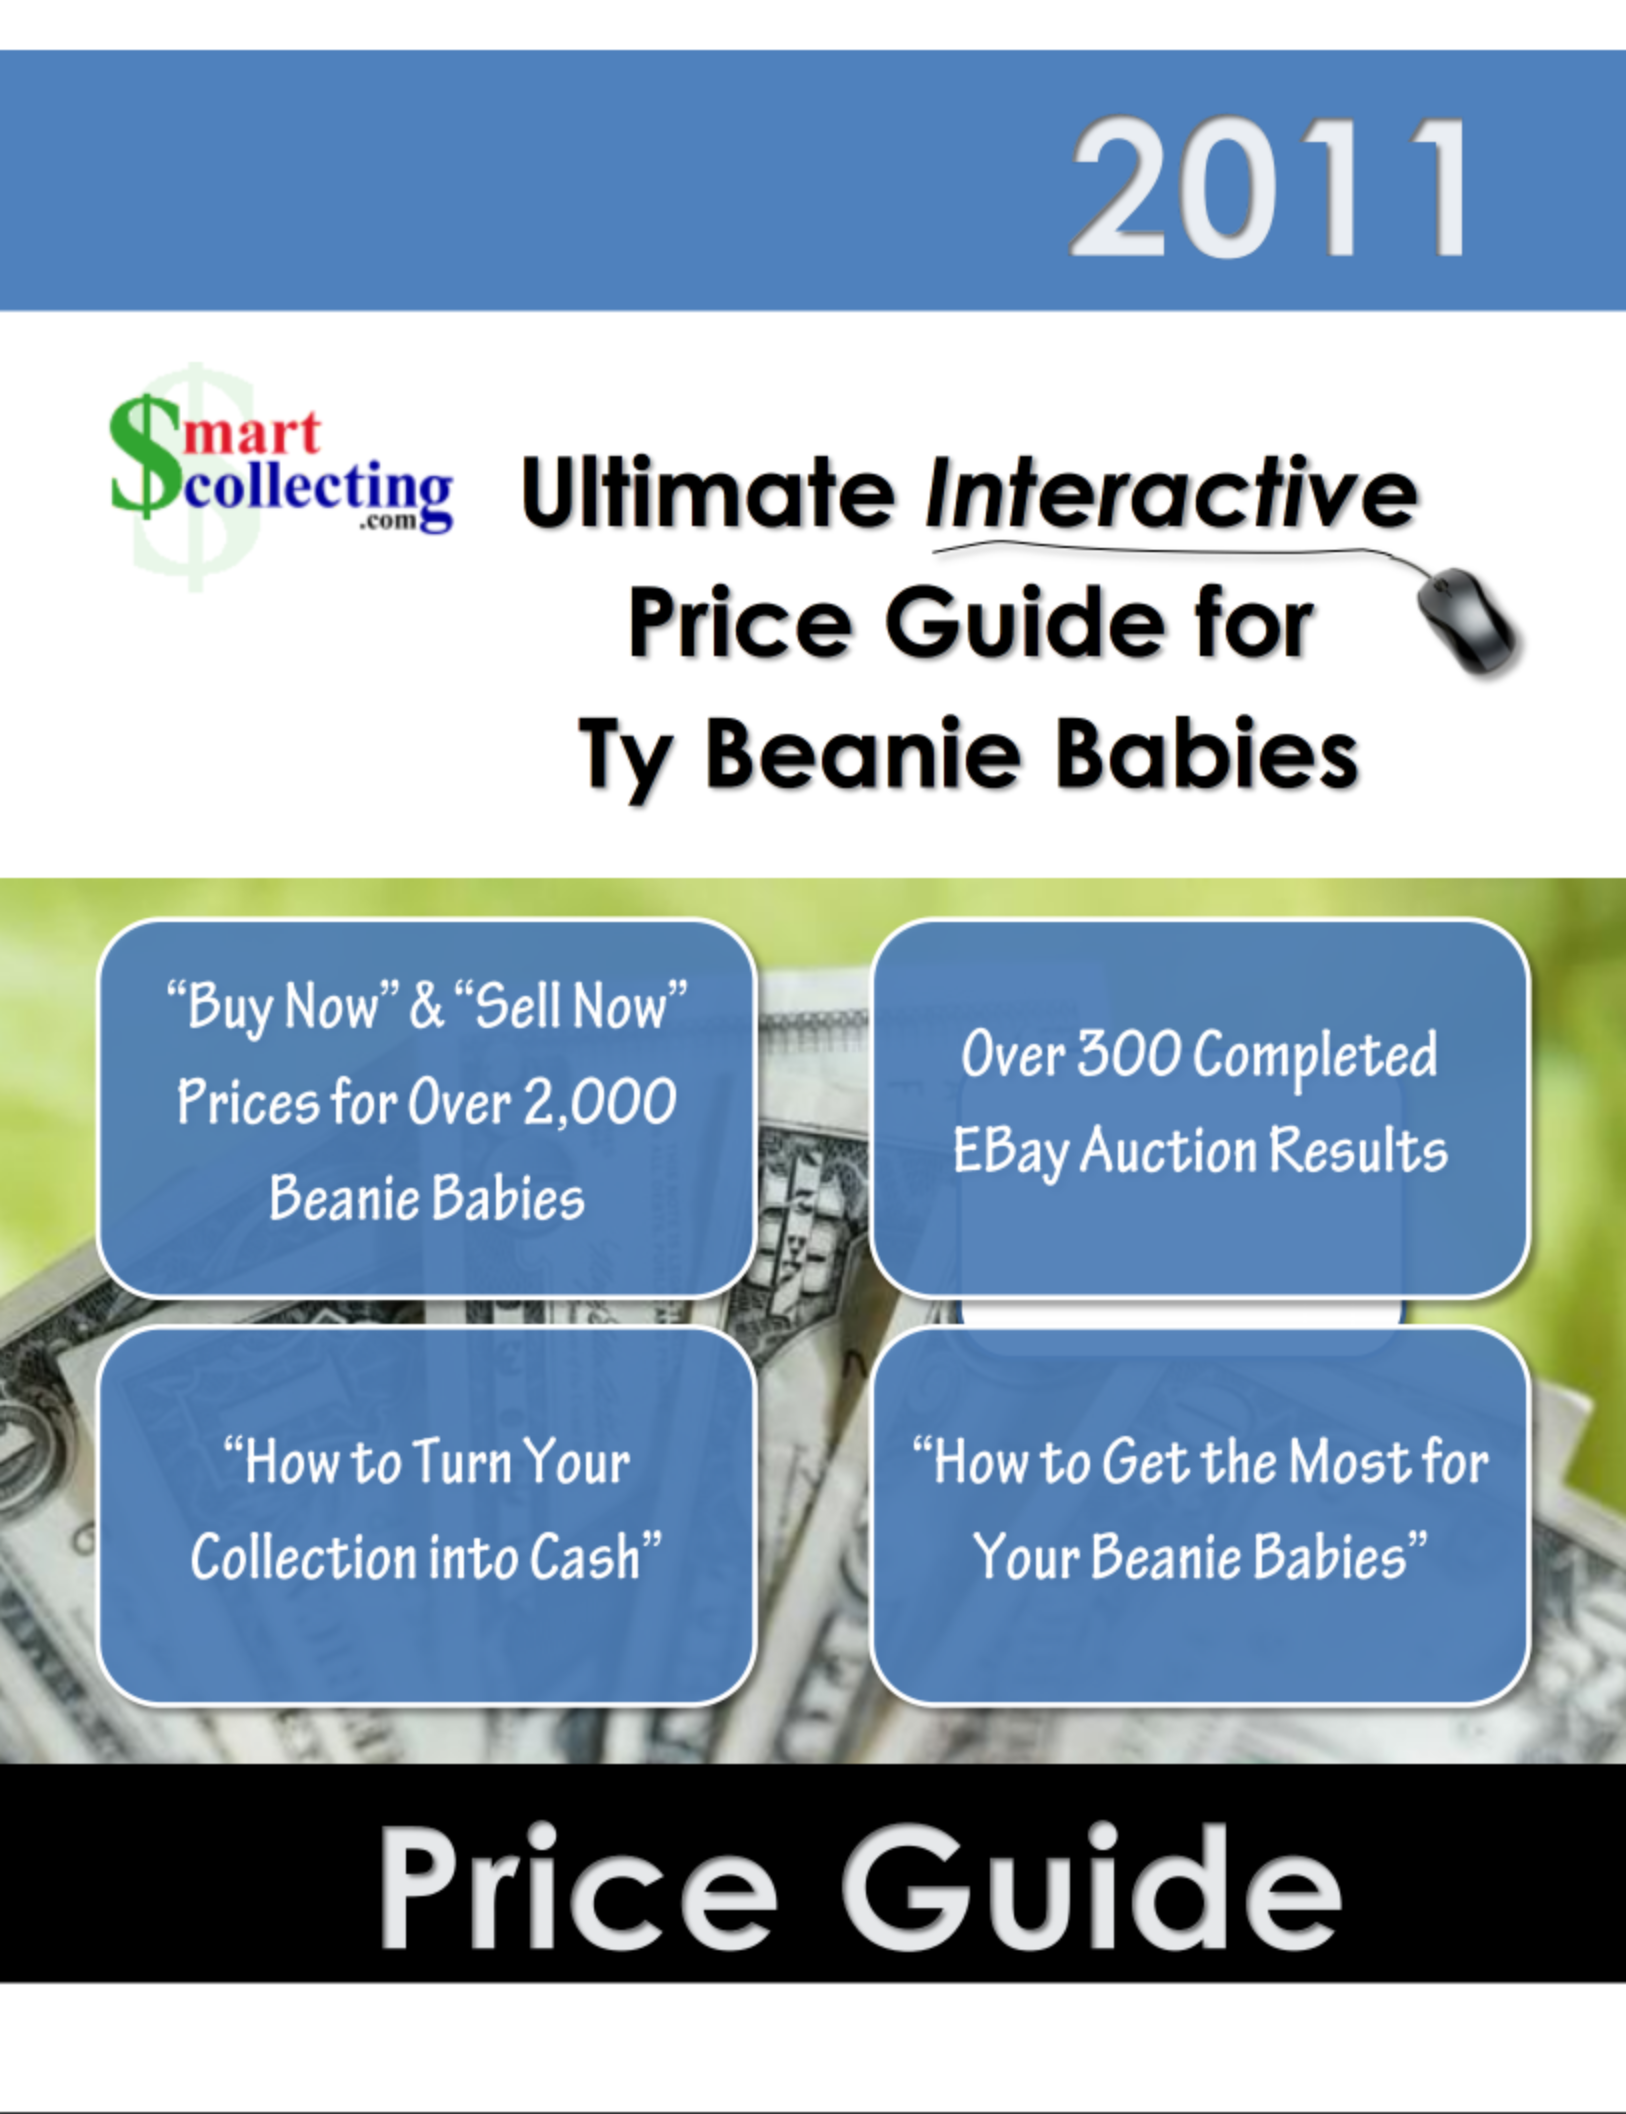 Get Your FREE Price Guide for Ty Beanie Babies - SmartCollecting 851939ab65f